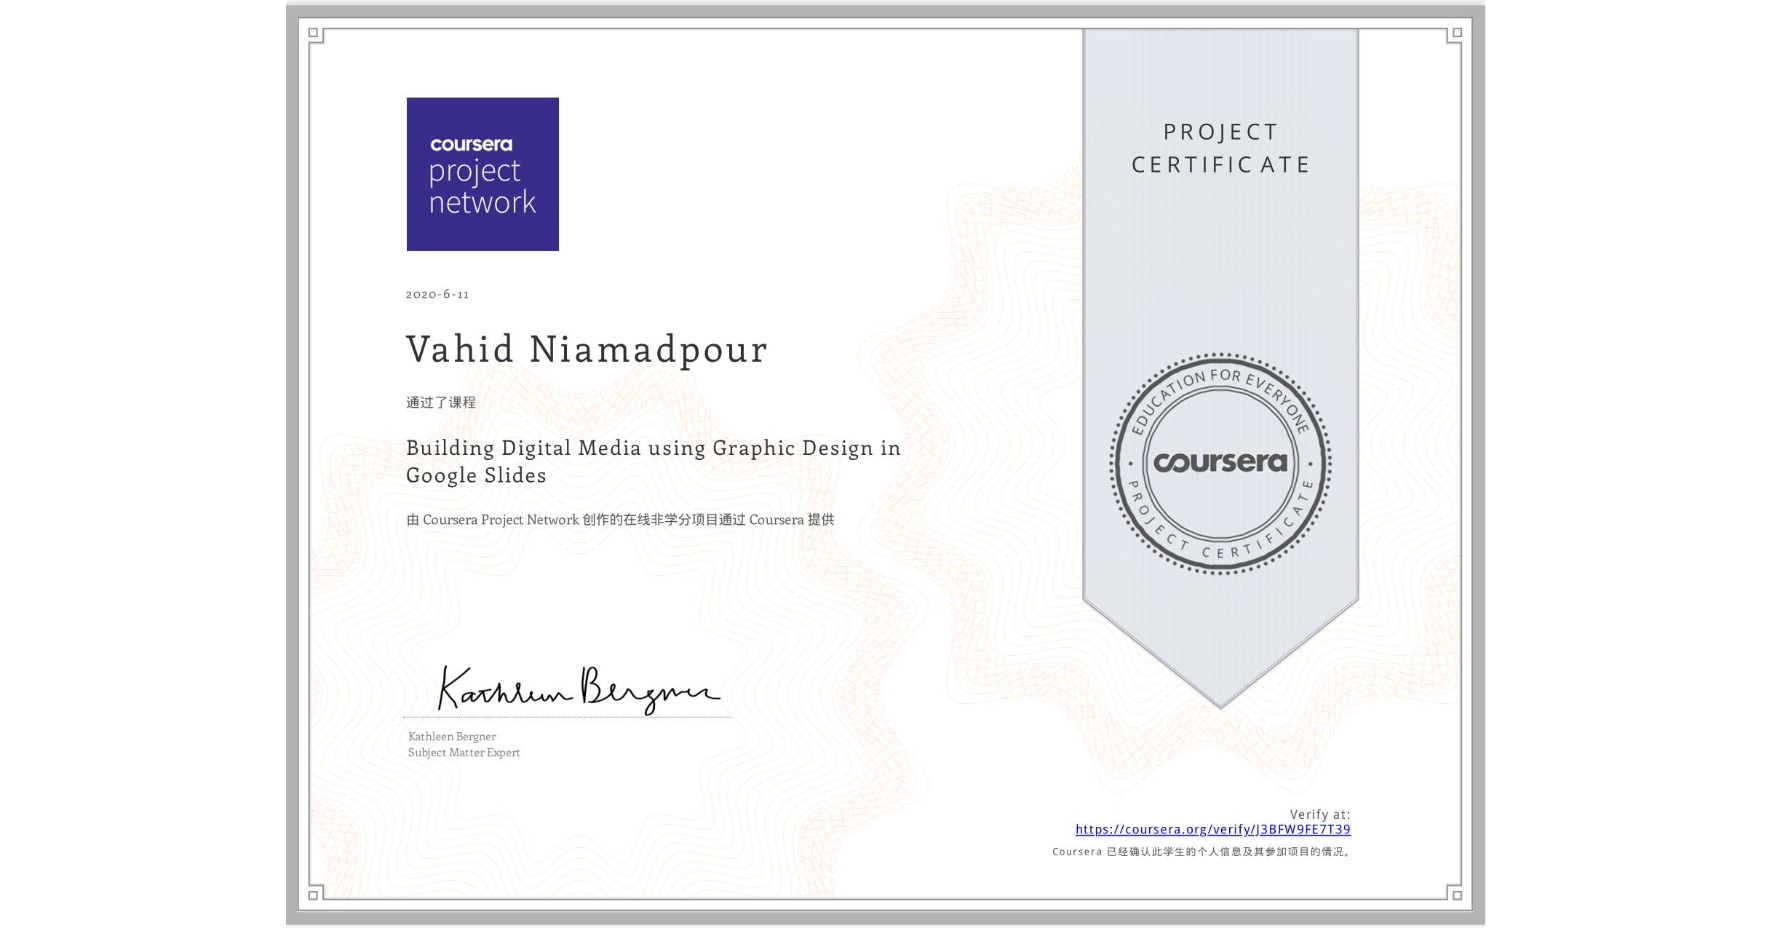 View certificate for Vahid Niamadpour, Building Digital Media using Graphic Design in Google Slides, an online non-credit course authorized by Coursera Project Network and offered through Coursera